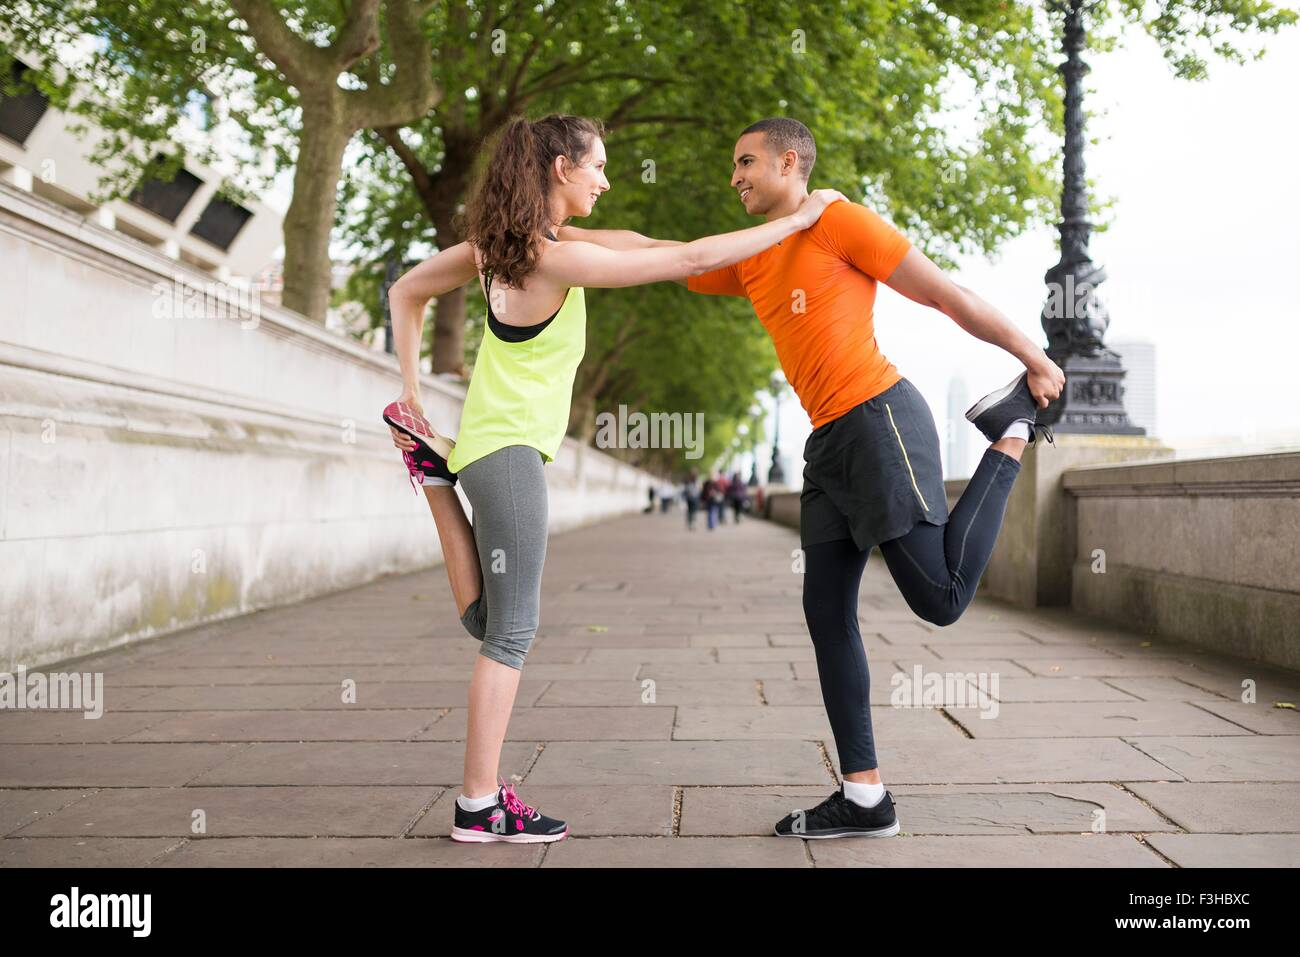 Male and female city runners warming up - Stock Image